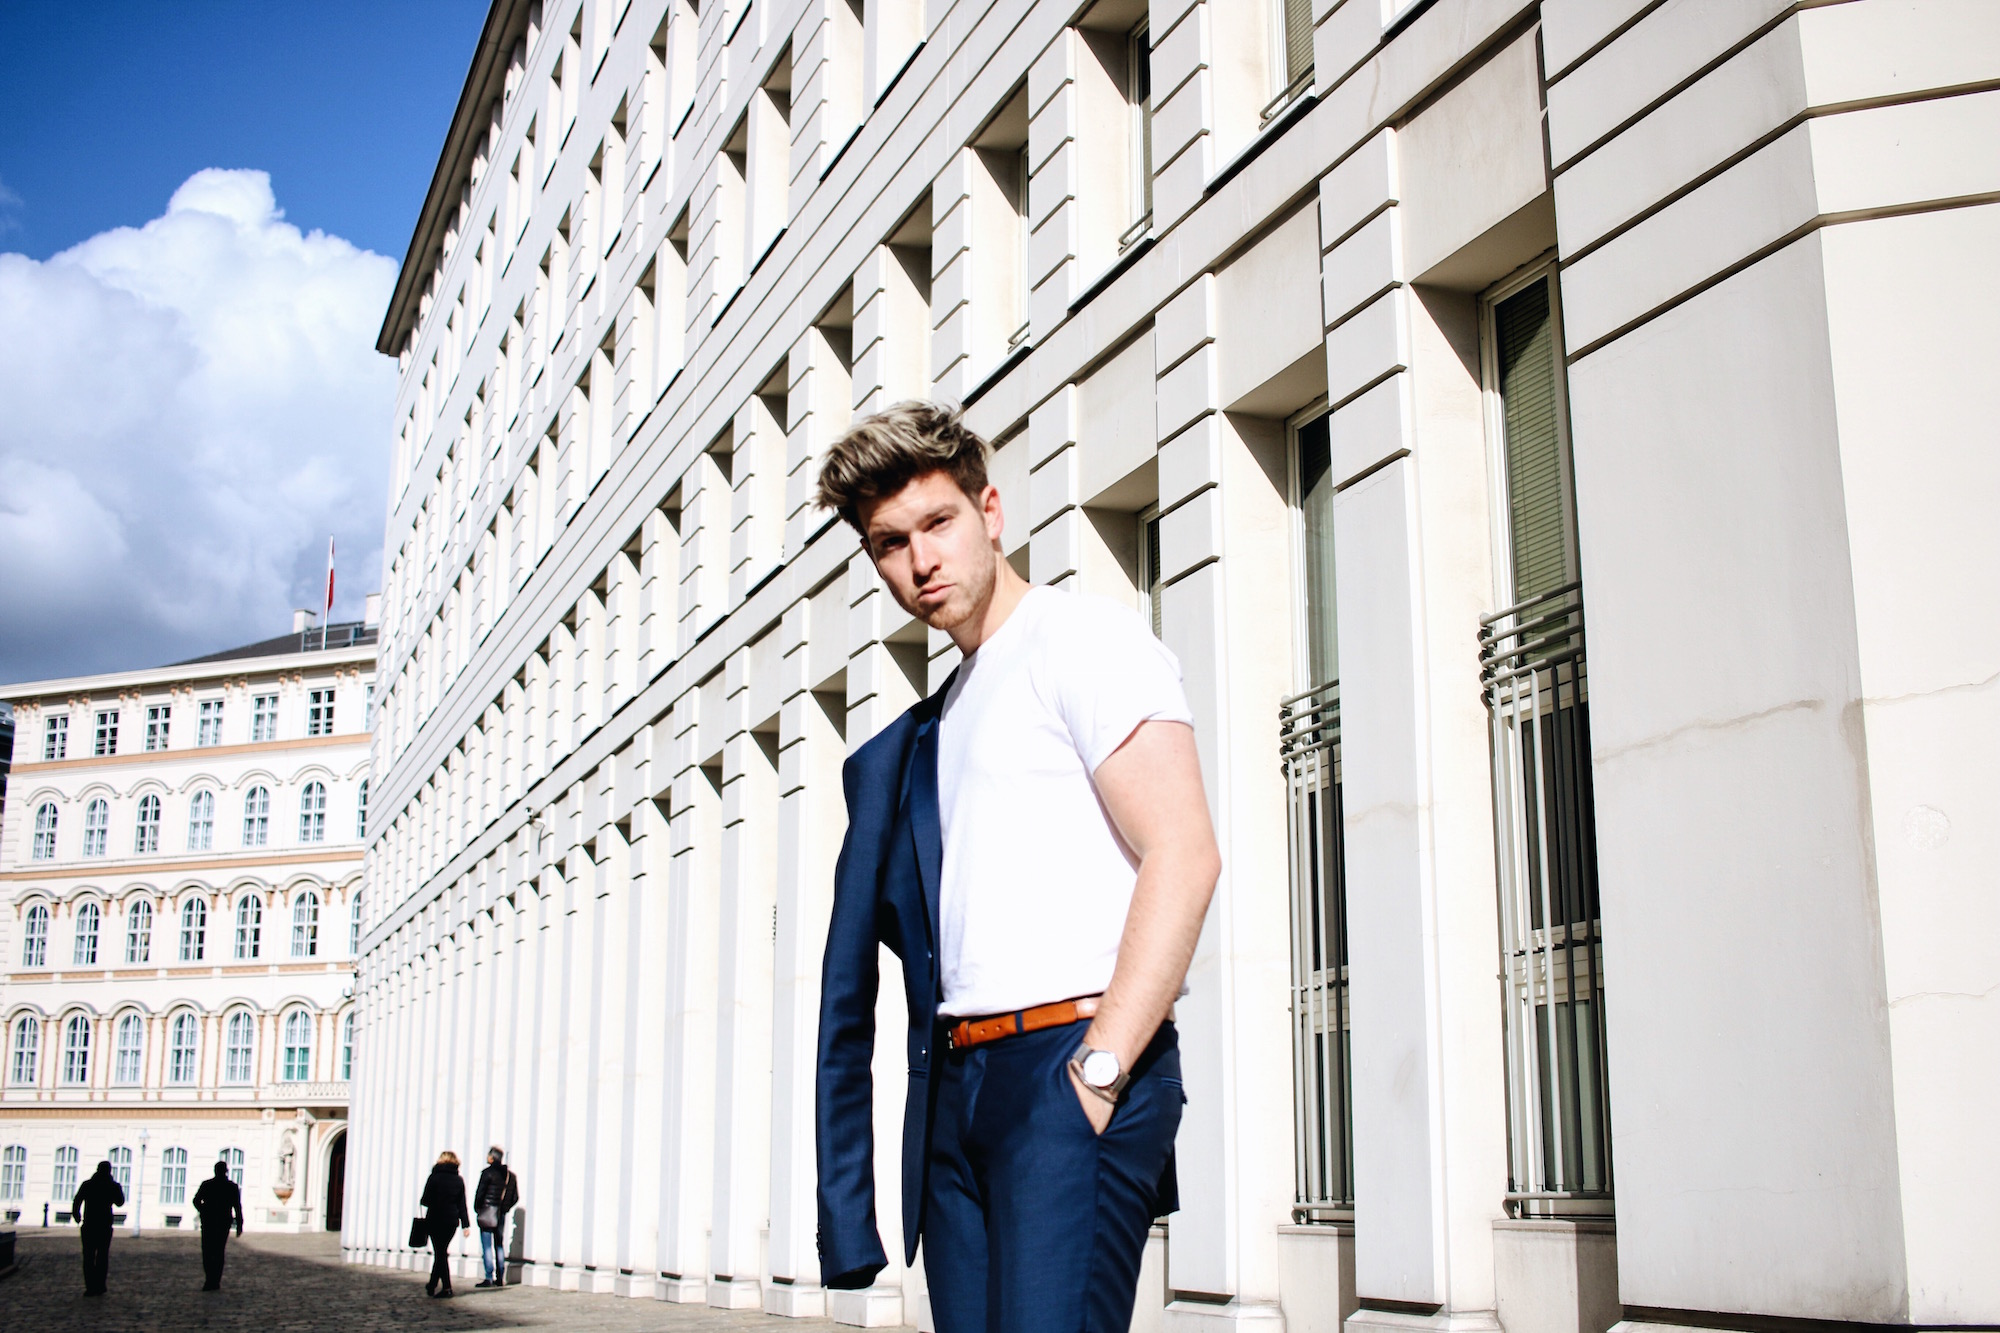 Tiger-Of-Sweden-Suit-Mix-Match_Three-ways-to-wear-a-suit_Meanwhile-in-Awesometown_Austrian-Mens-Fashion-and-Lifestyle-Blogger17